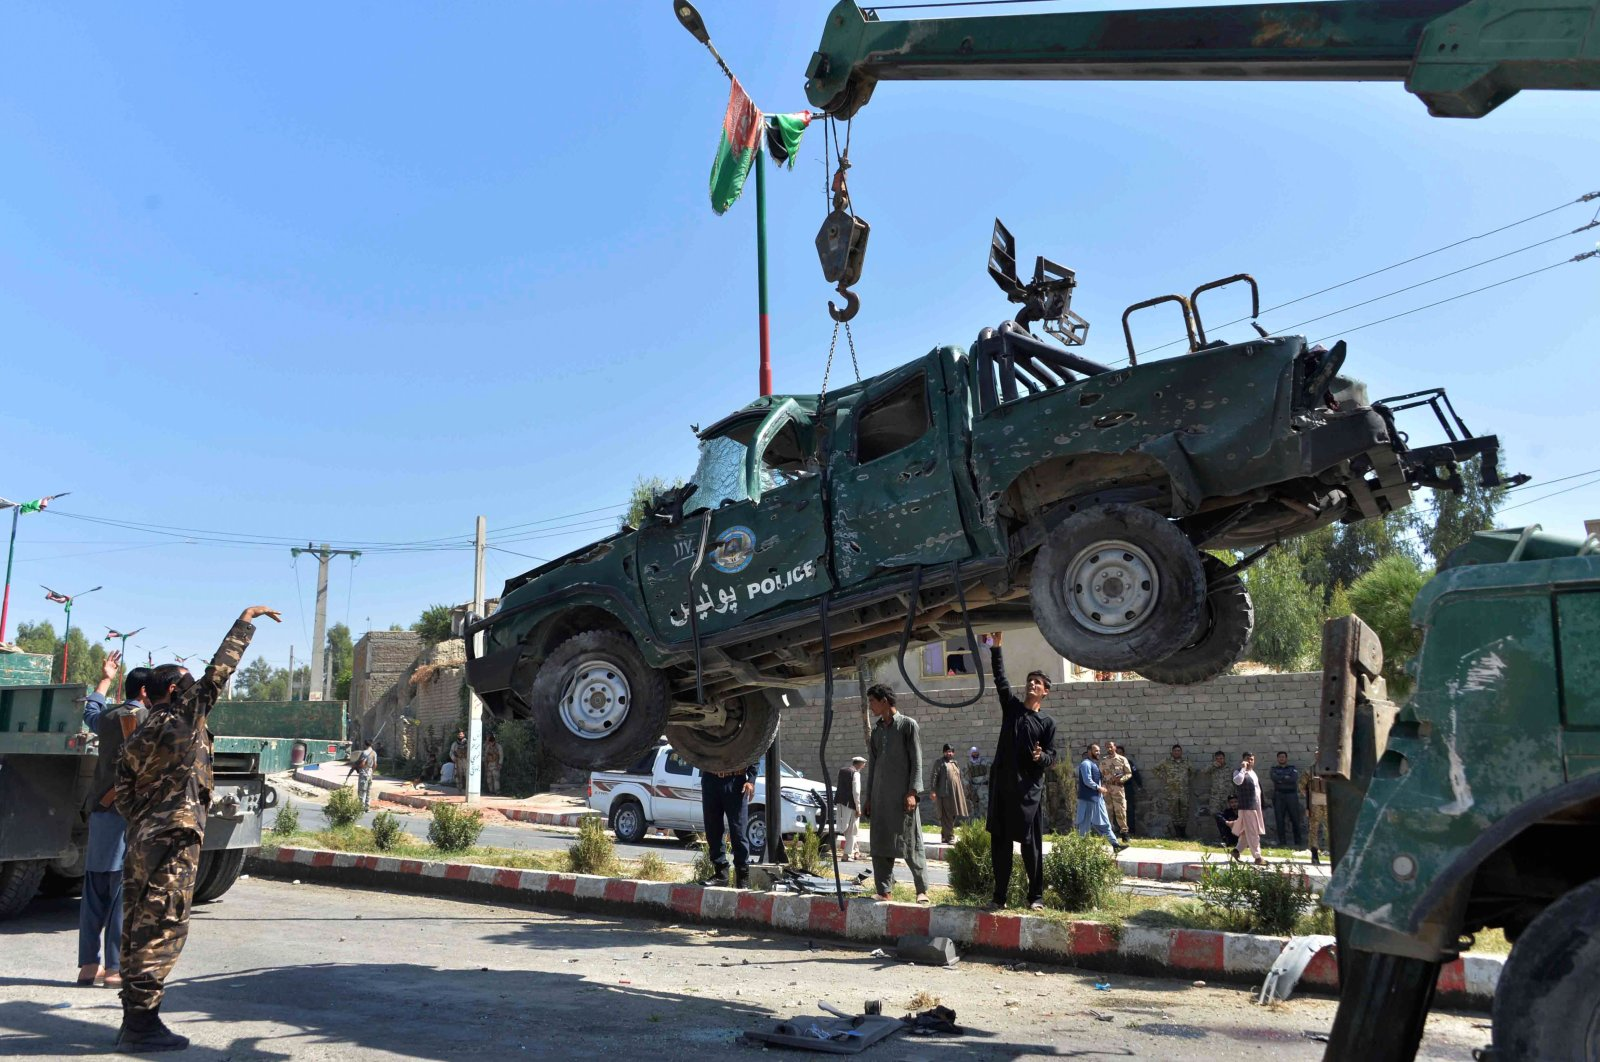 Afghan security forces remove a damaged police vehicle at the site of a car bomb attack that targeted Laghman provincial governor's convoy, in Mihtarlam, Laghman Province on Oct. 5, 2020. (AFP Photo)